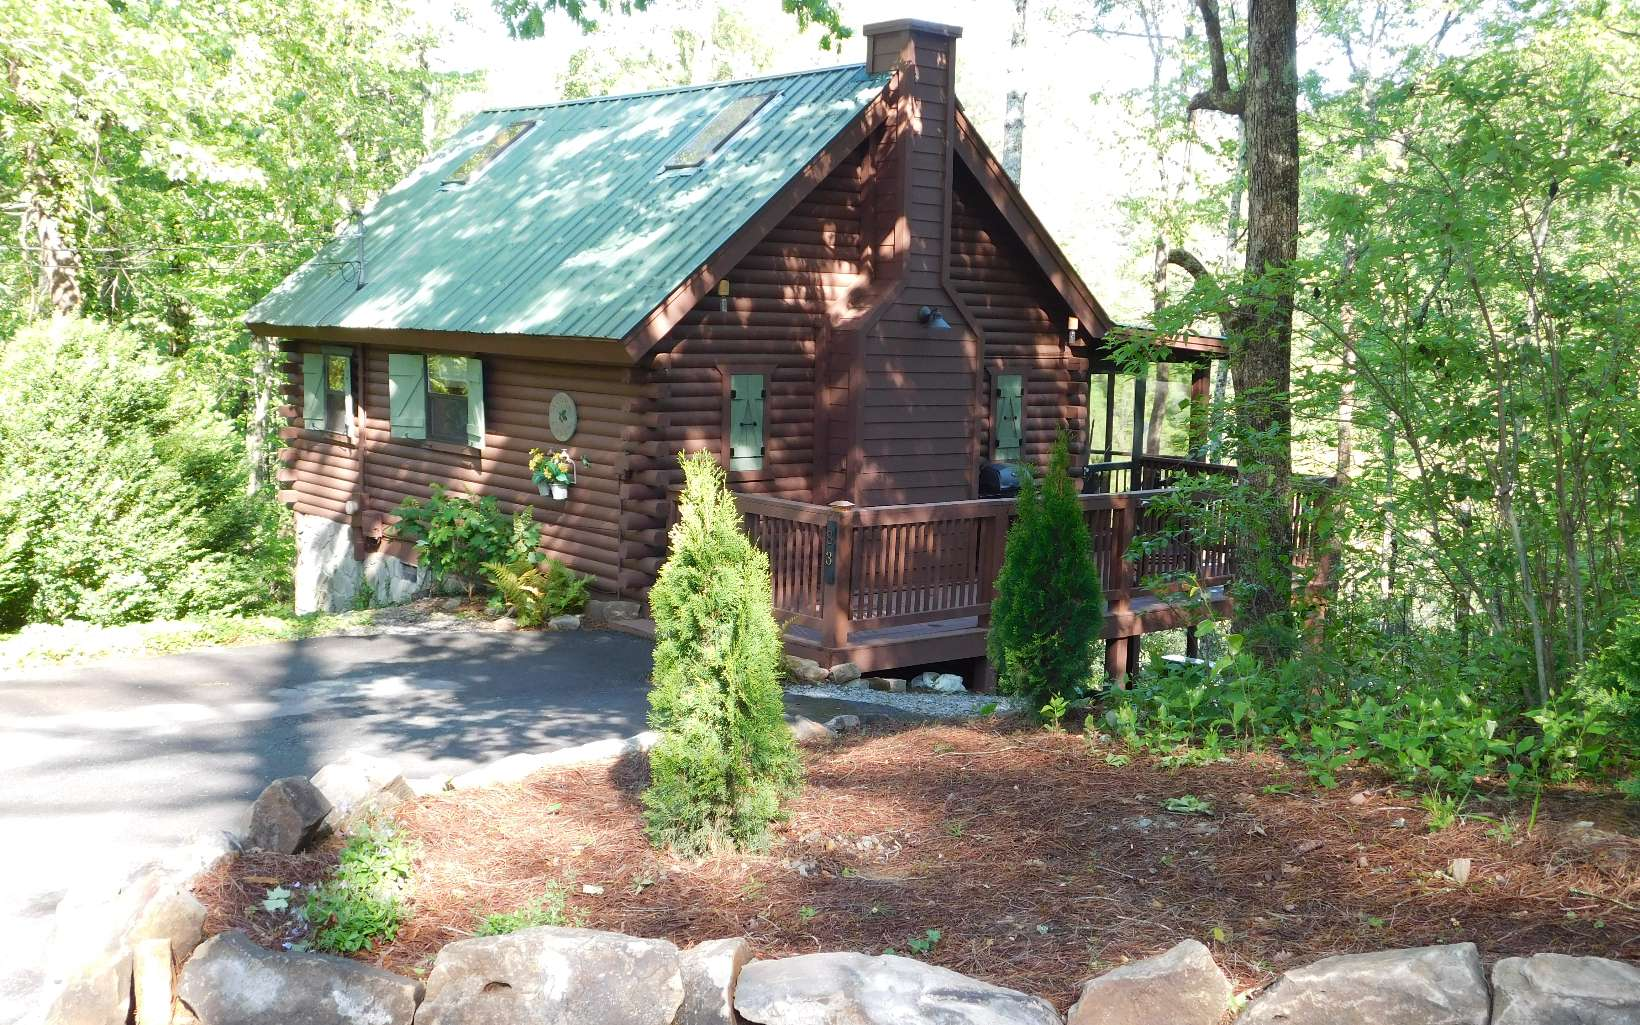 for cabin the cabins ideal rent of spectacular north mountains day and lights to rentals summit this helen gives a view ga in georgia jasonsmlivingarea by offers night guests